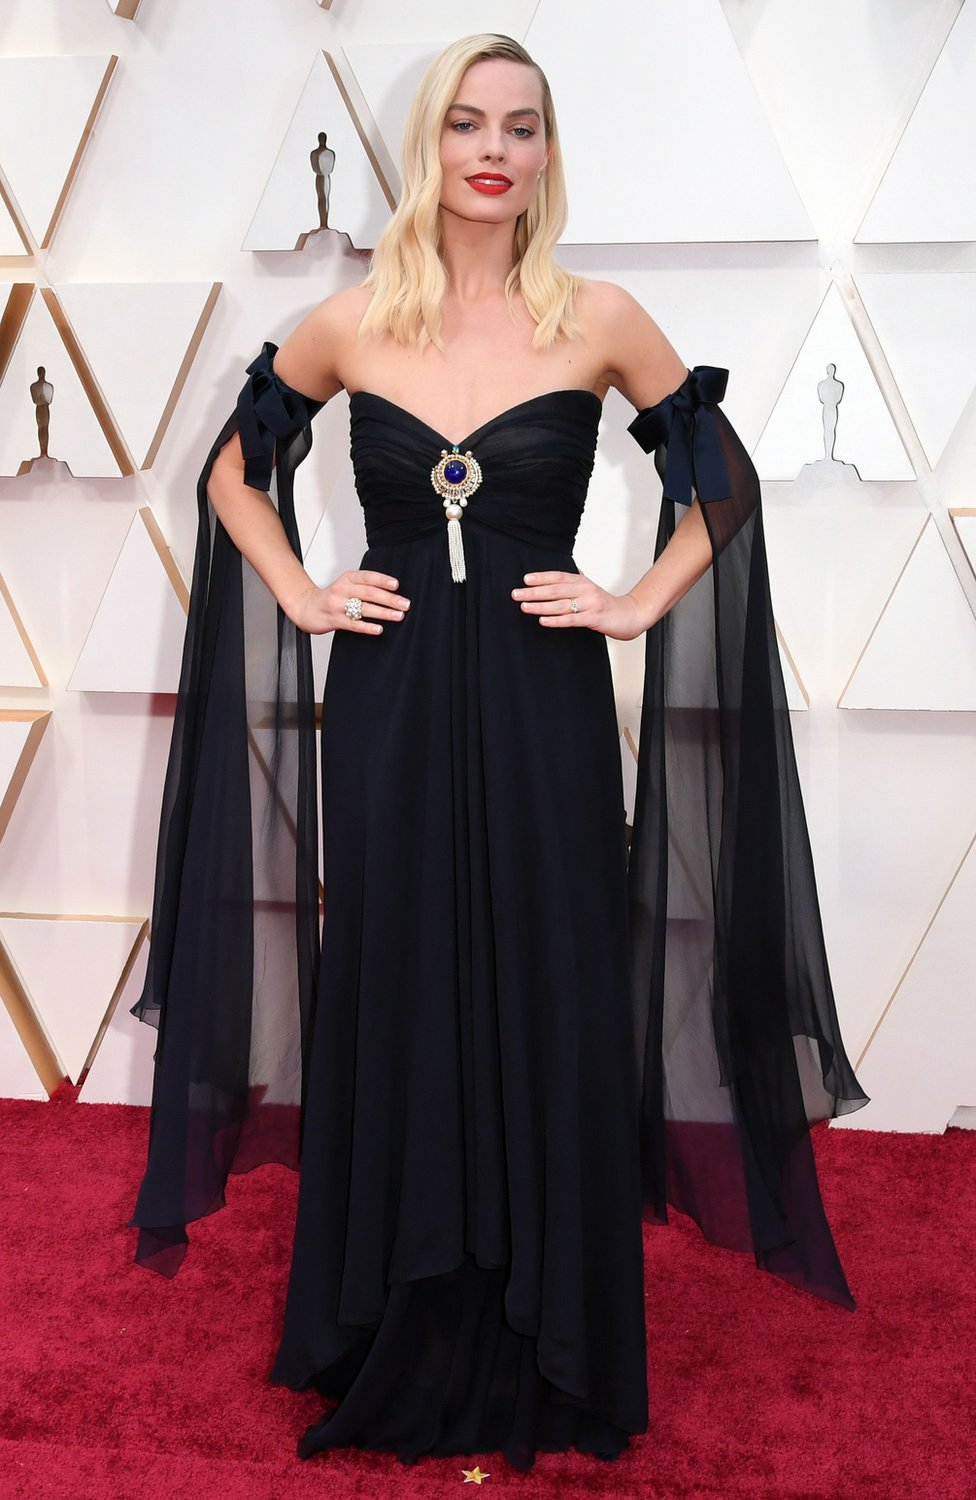 Margot Robbie on the red carpet